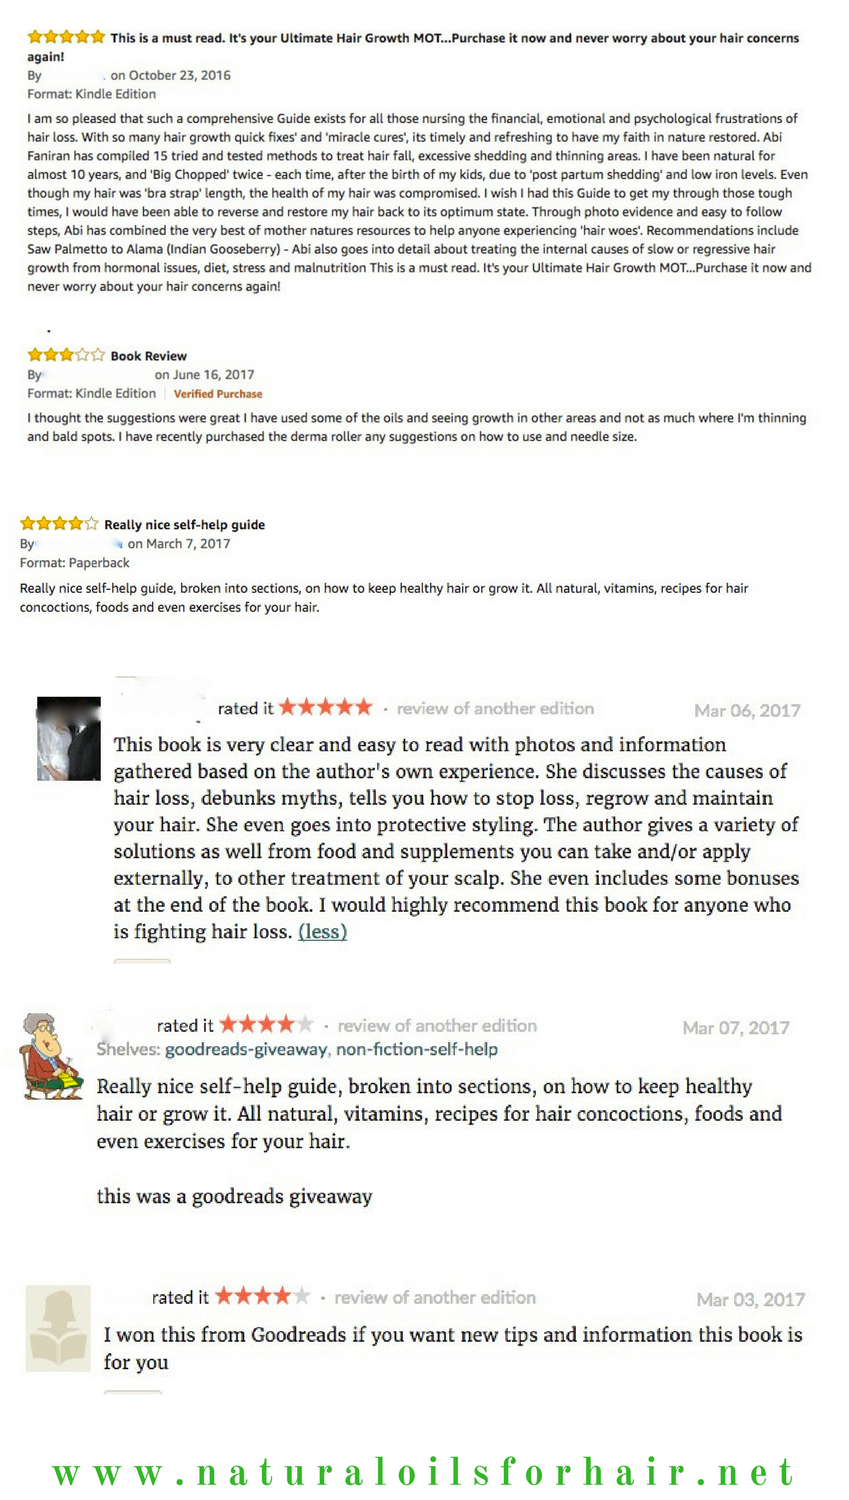 Hair Growth Guide Reviews